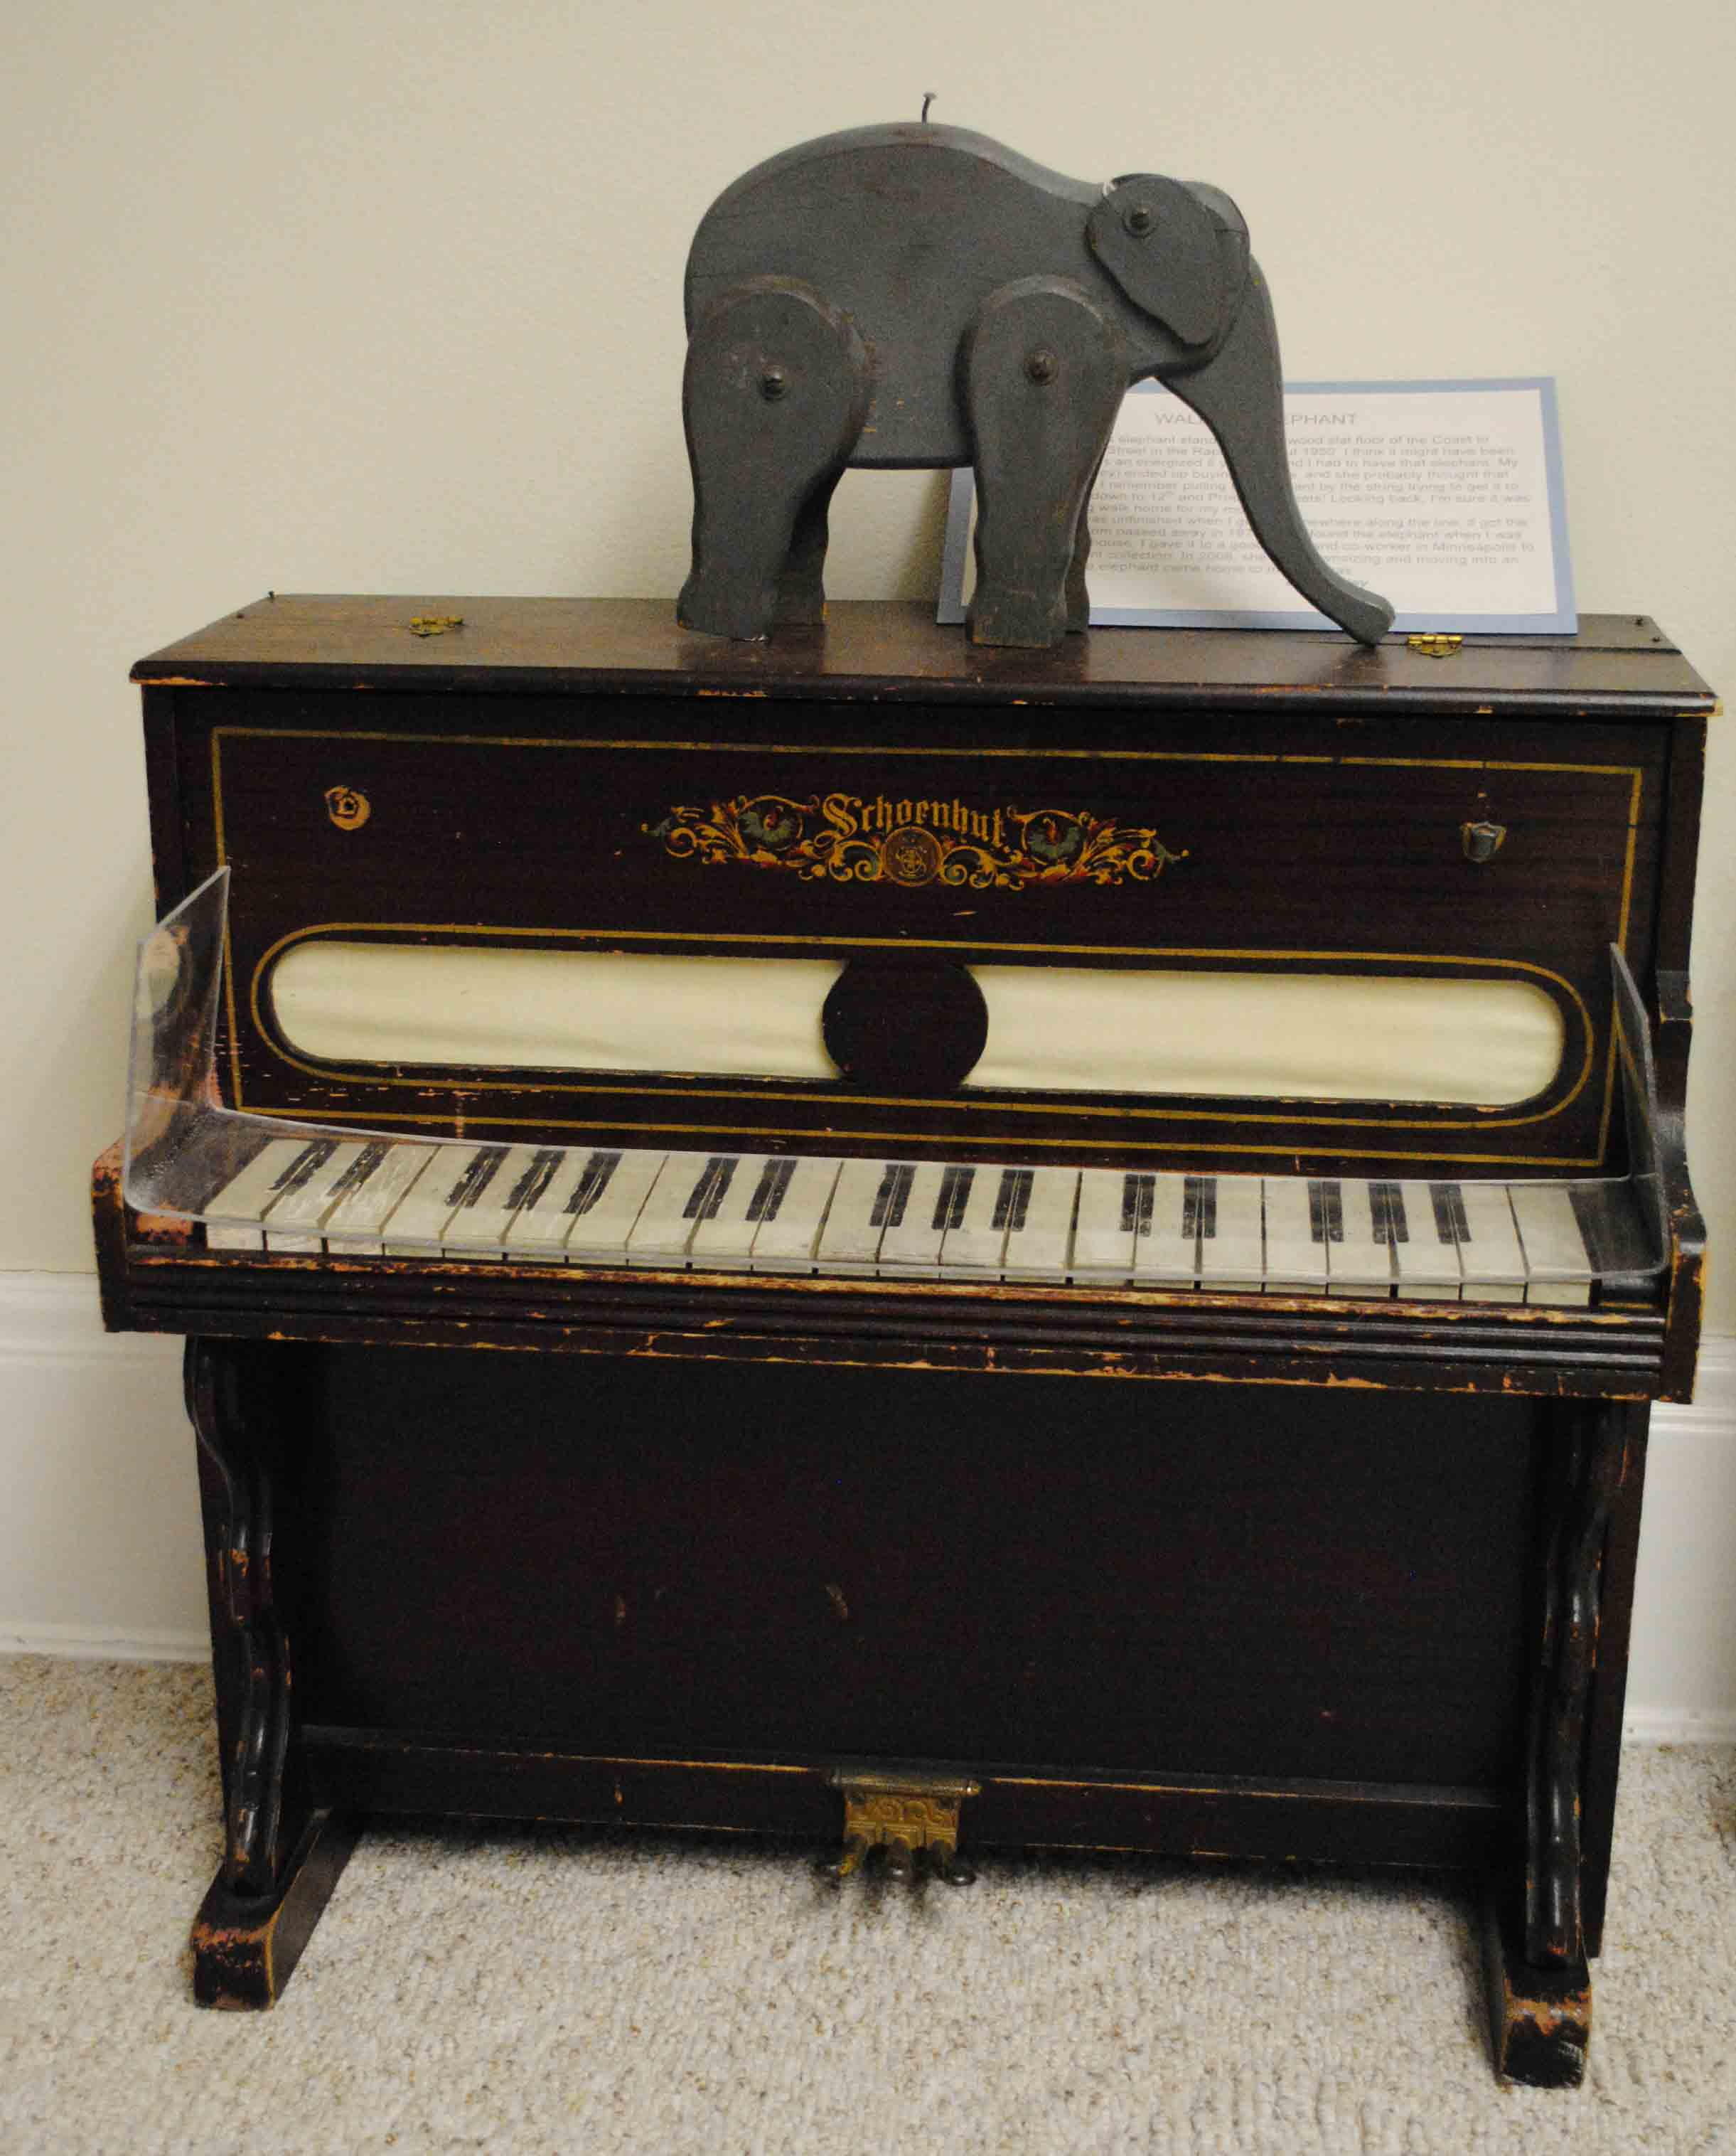 Toy elephant and piano in the toy room